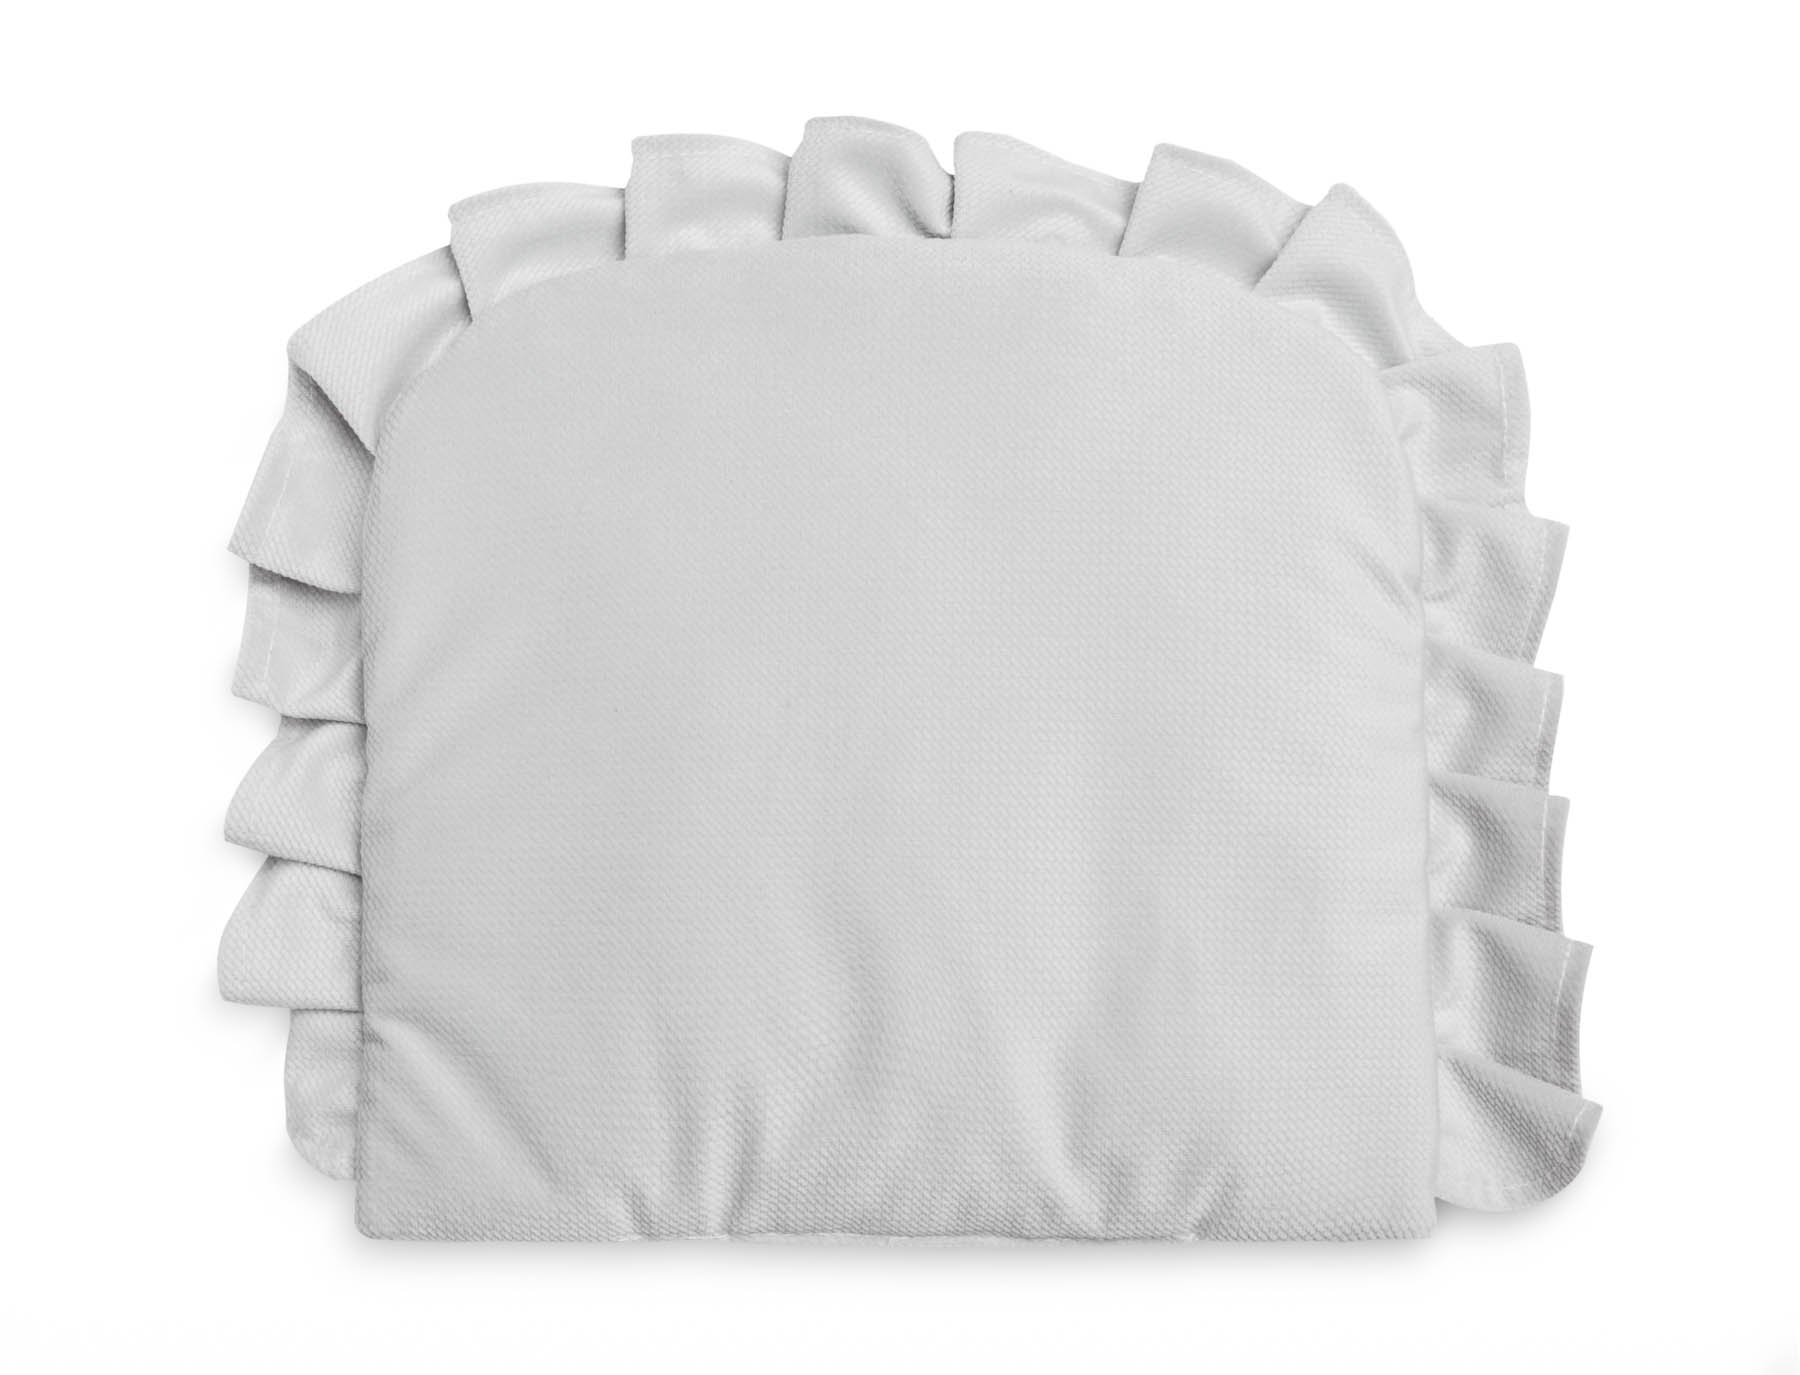 Pillow With a Frill – Velvet grey